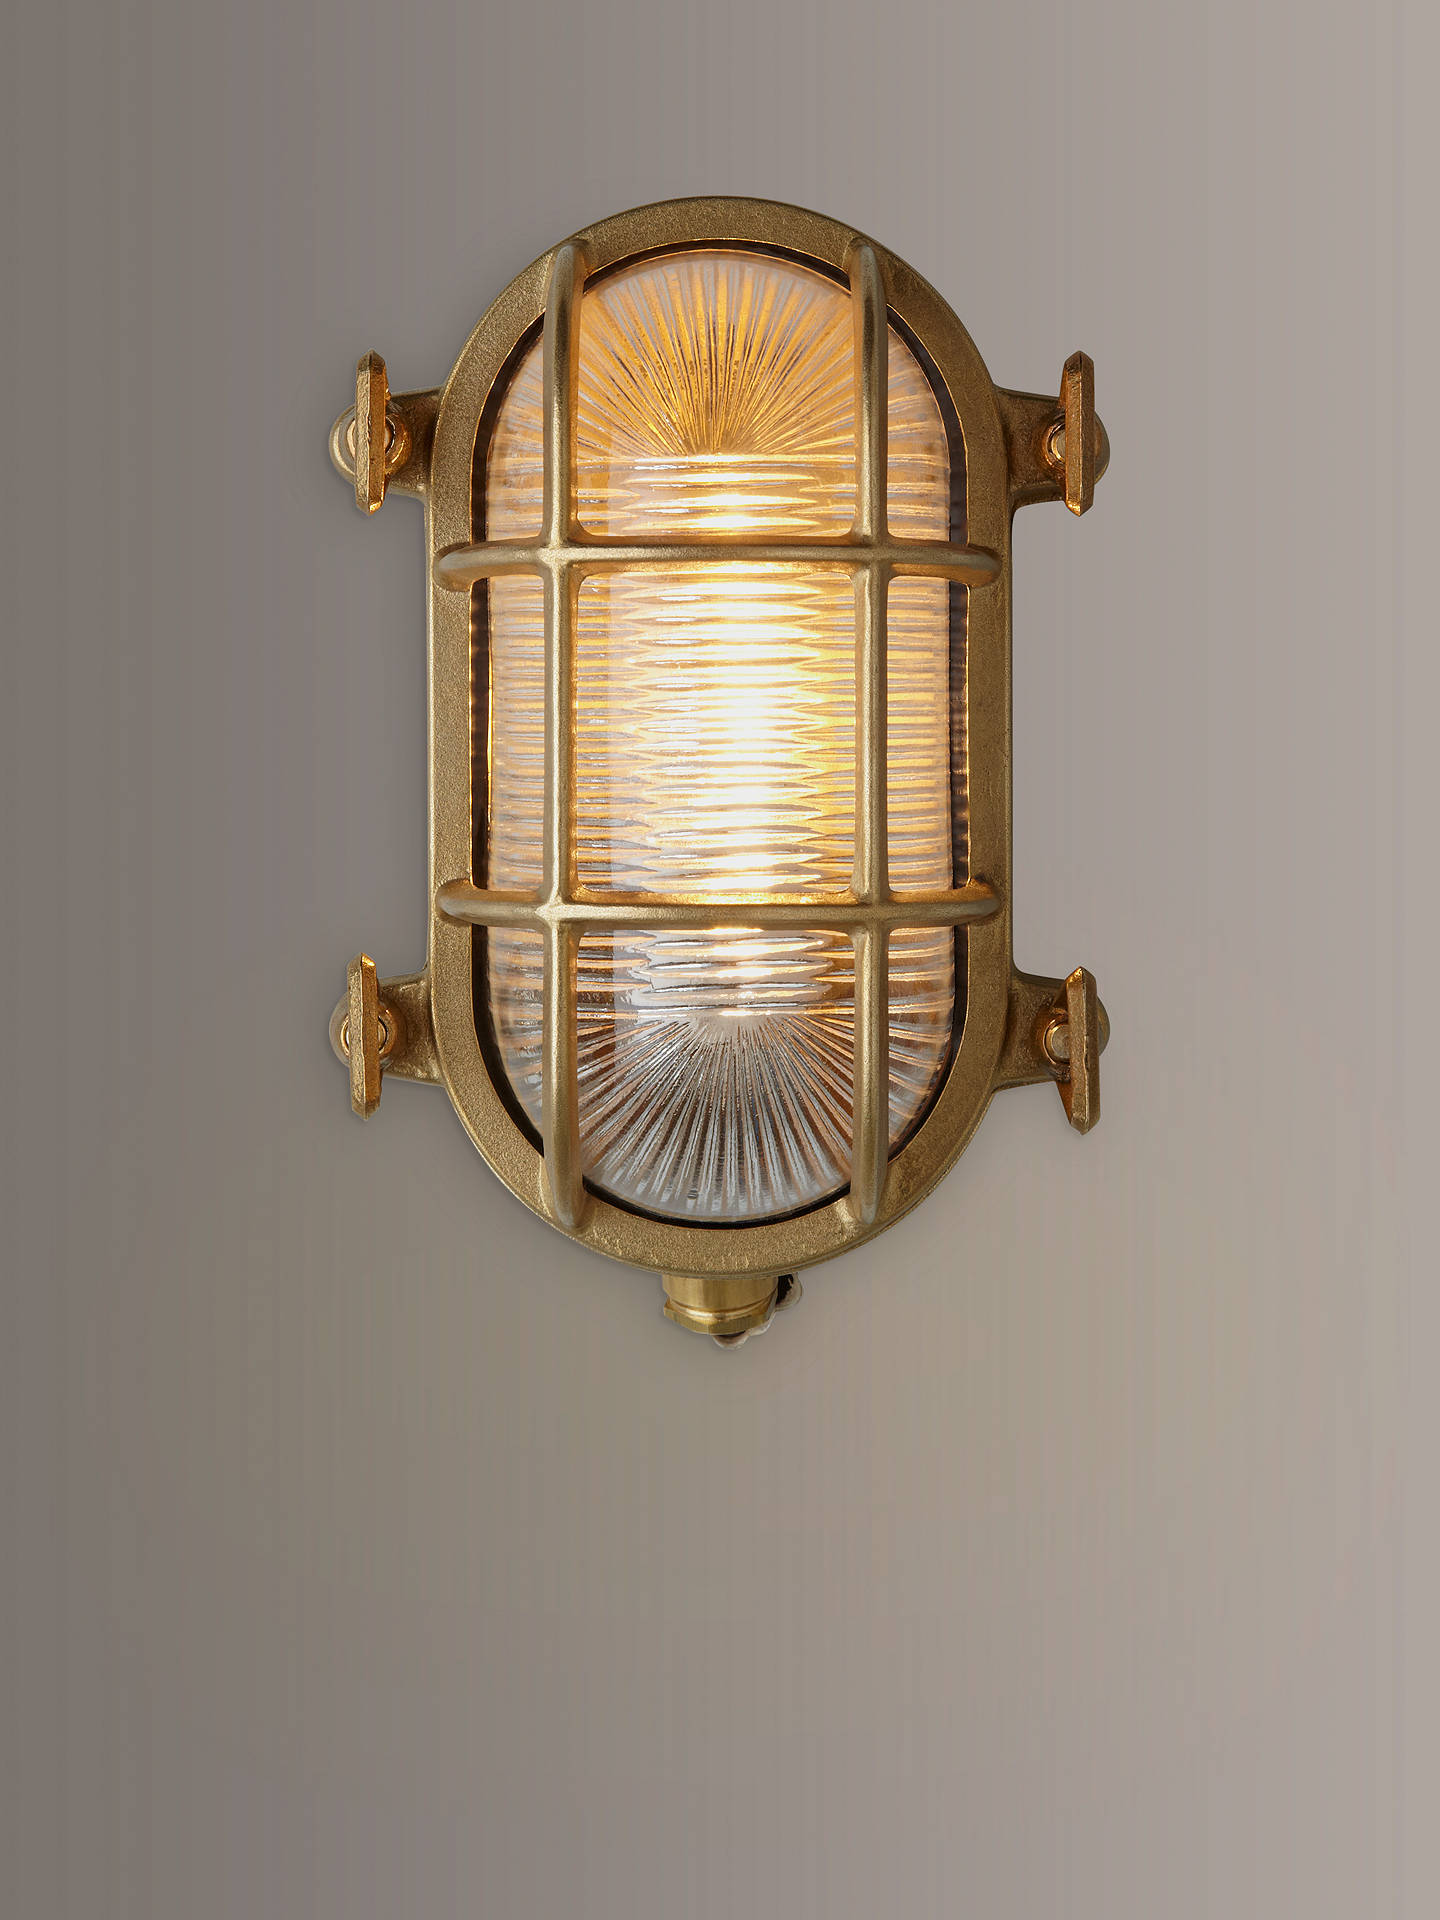 Buy Nordlux Bulkhead Outdoor Wall Light, Solid Brass Online at johnlewis.com